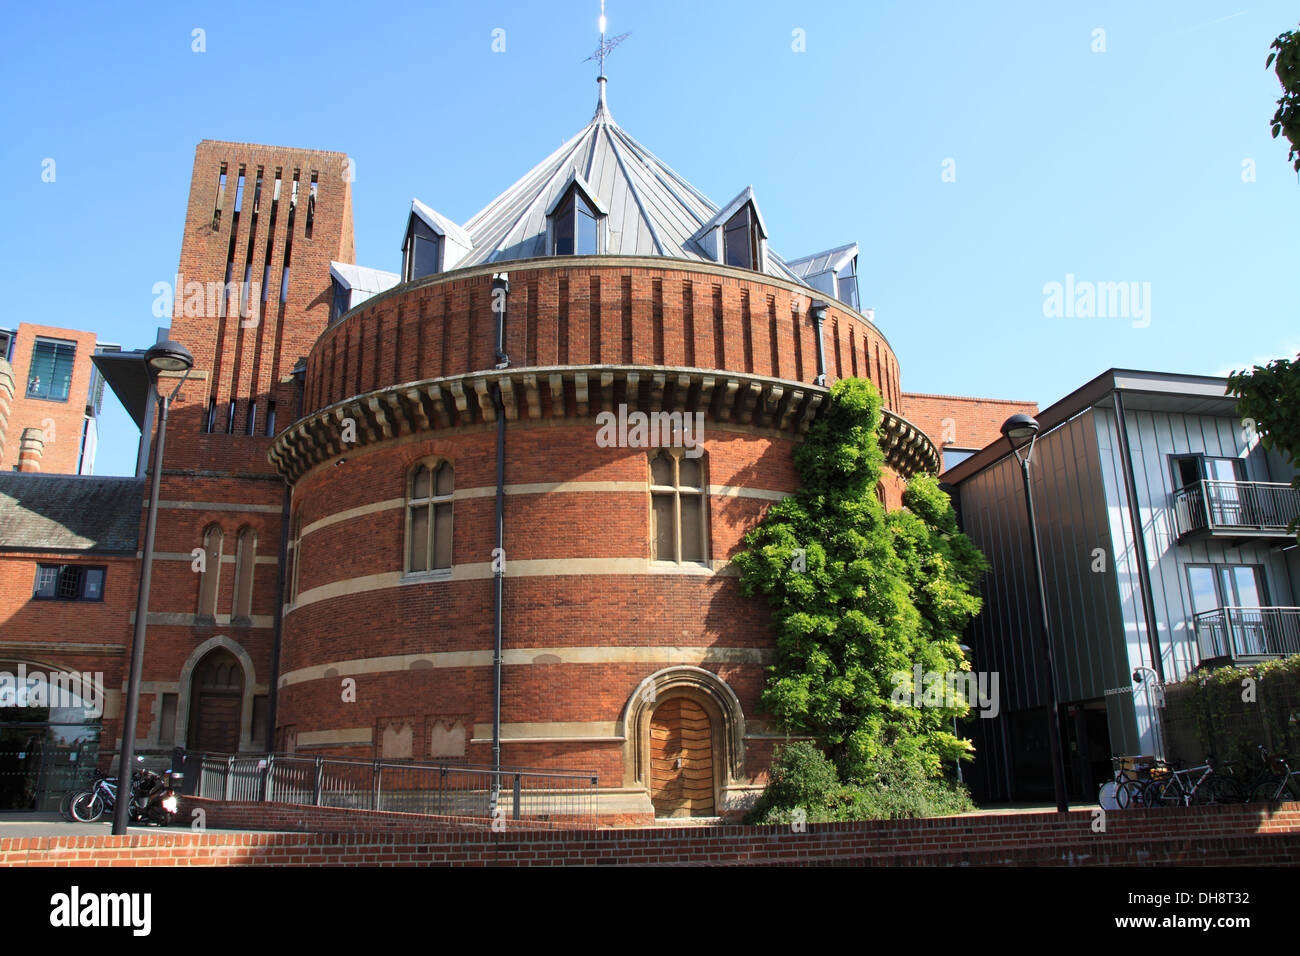 Royal Shakespeare Theatre - Stock Image